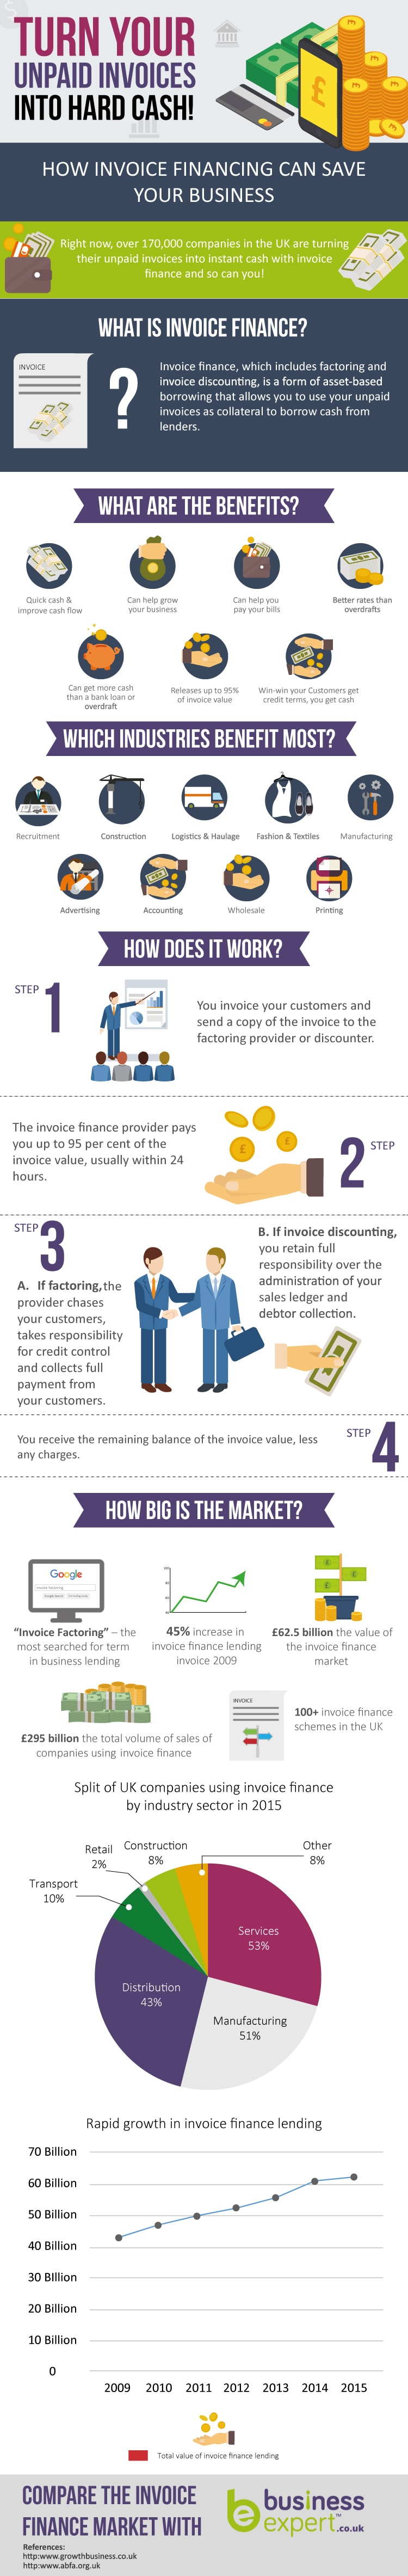 invoice-finance-infographic-min